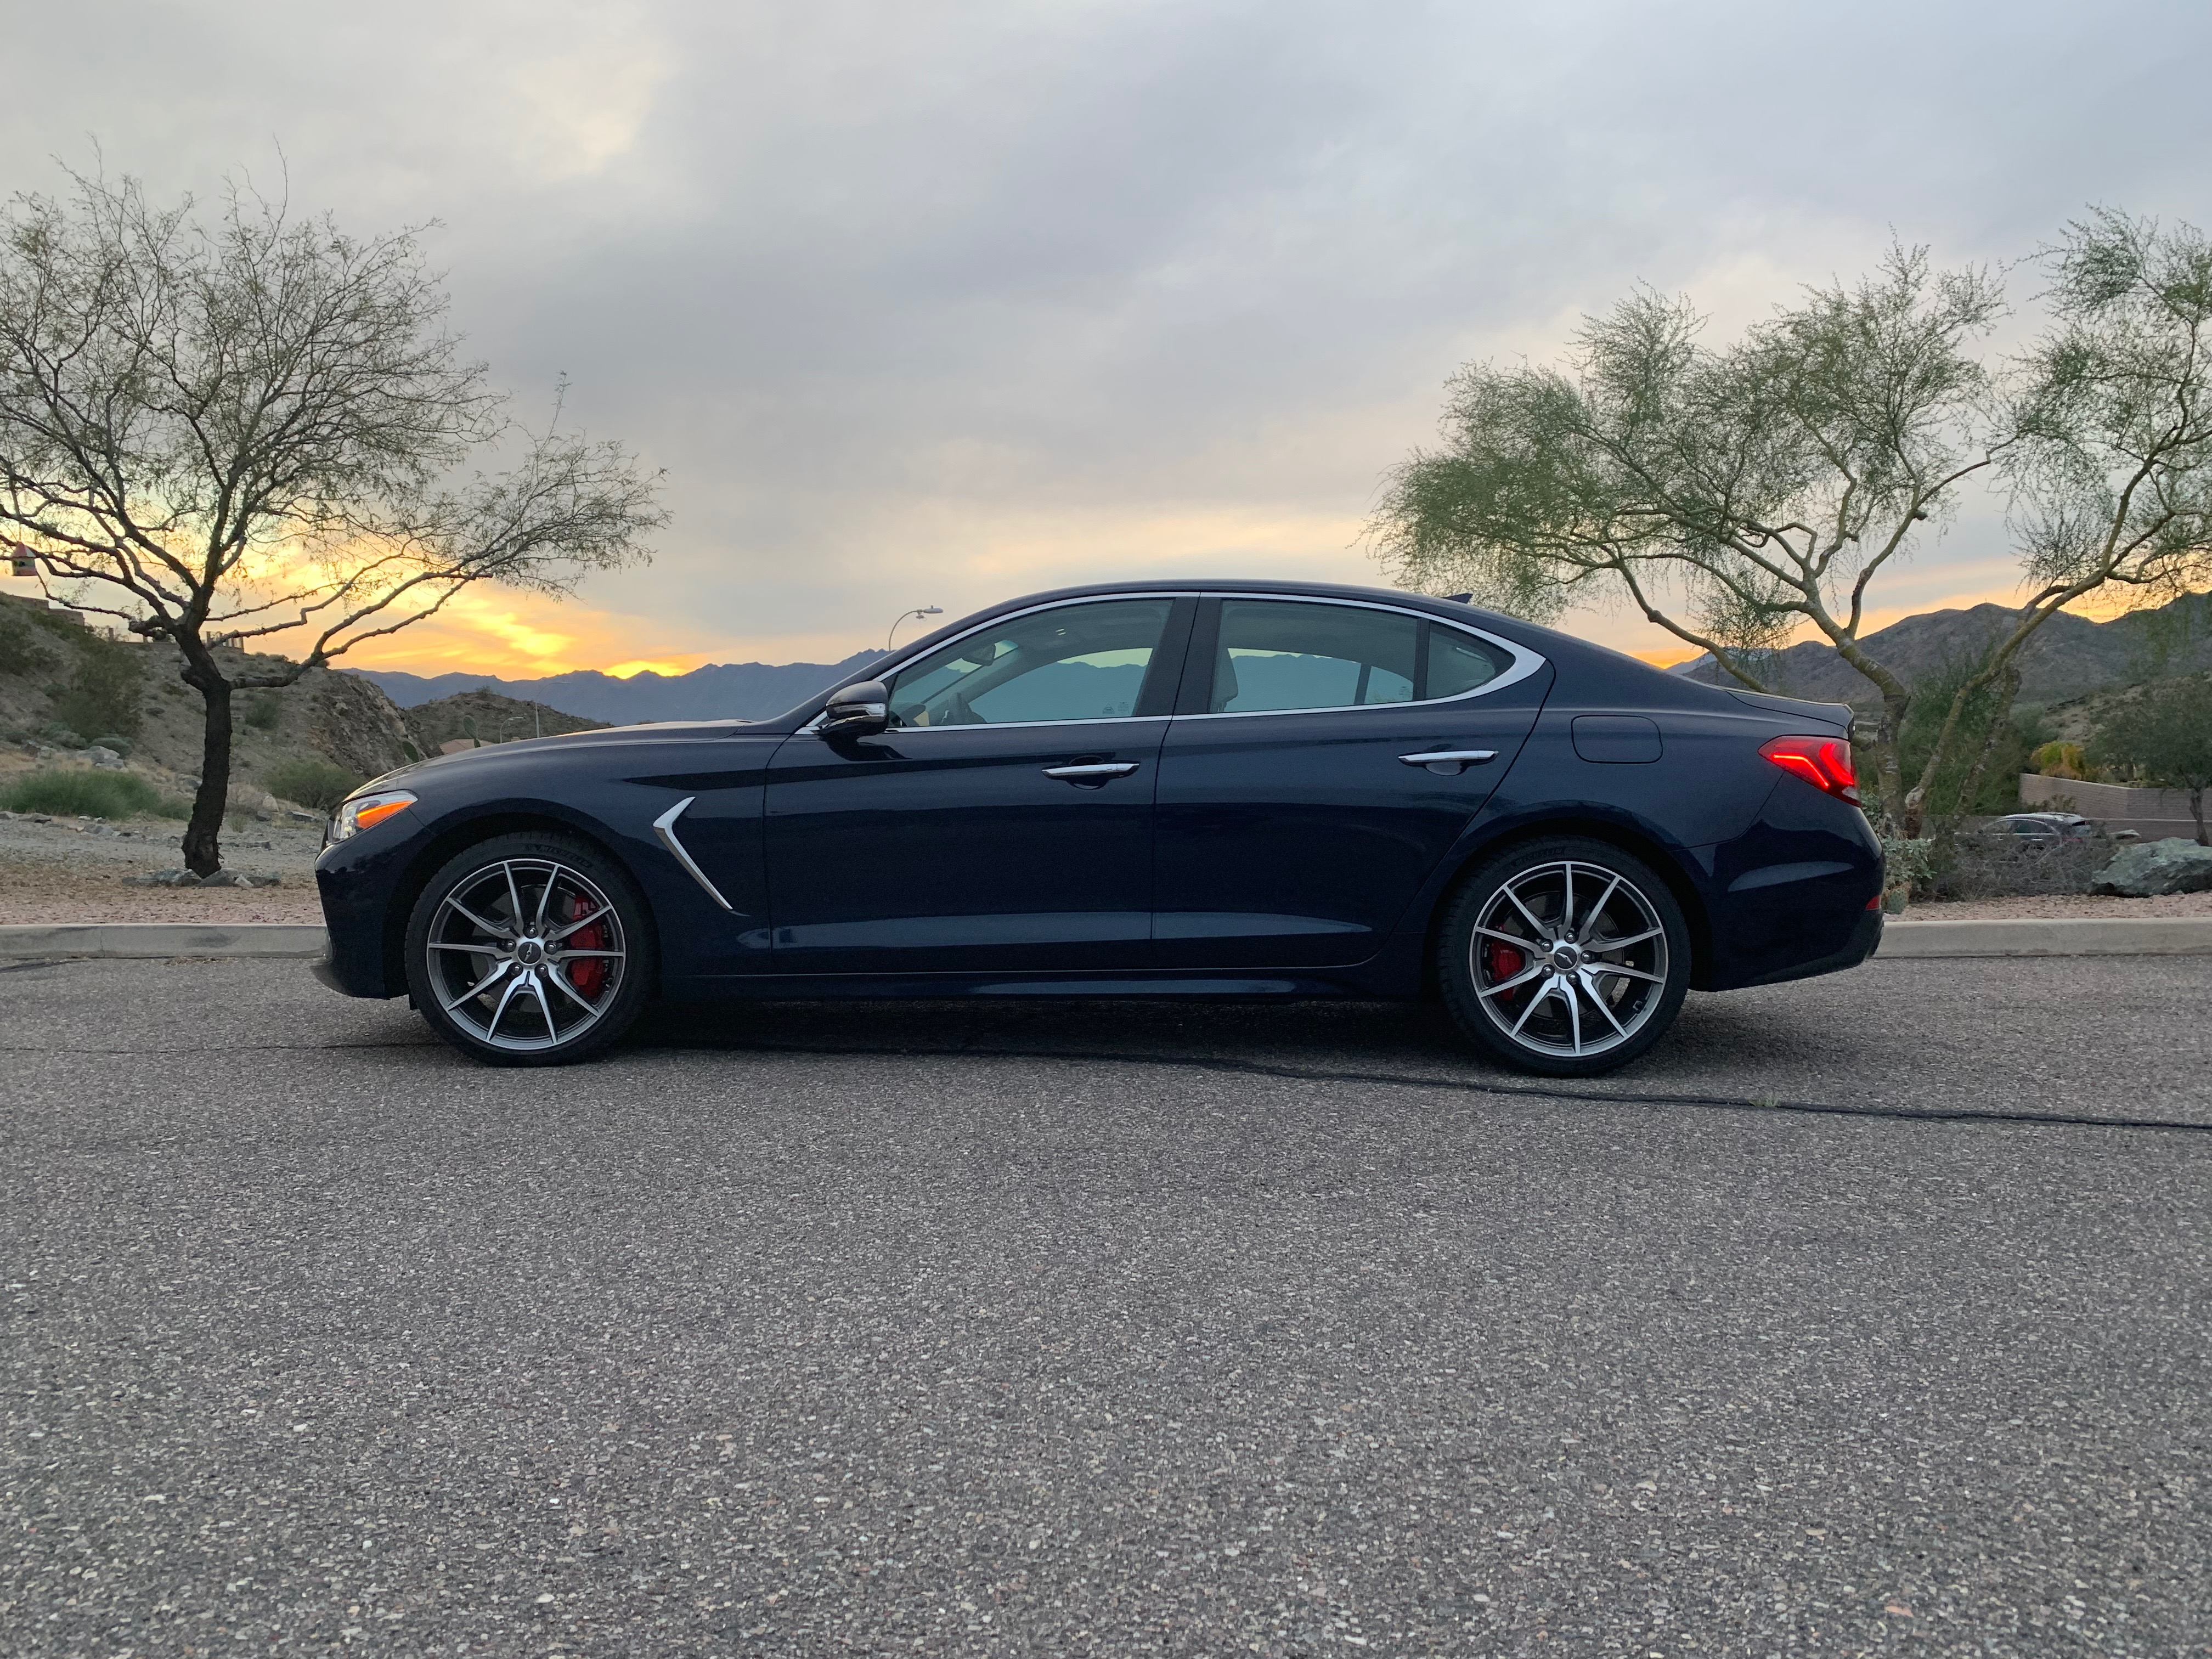 The Genesis G70 is set to make a deserved splash in the entry-level compact luxury sedan sector. | Carter Nacke photos